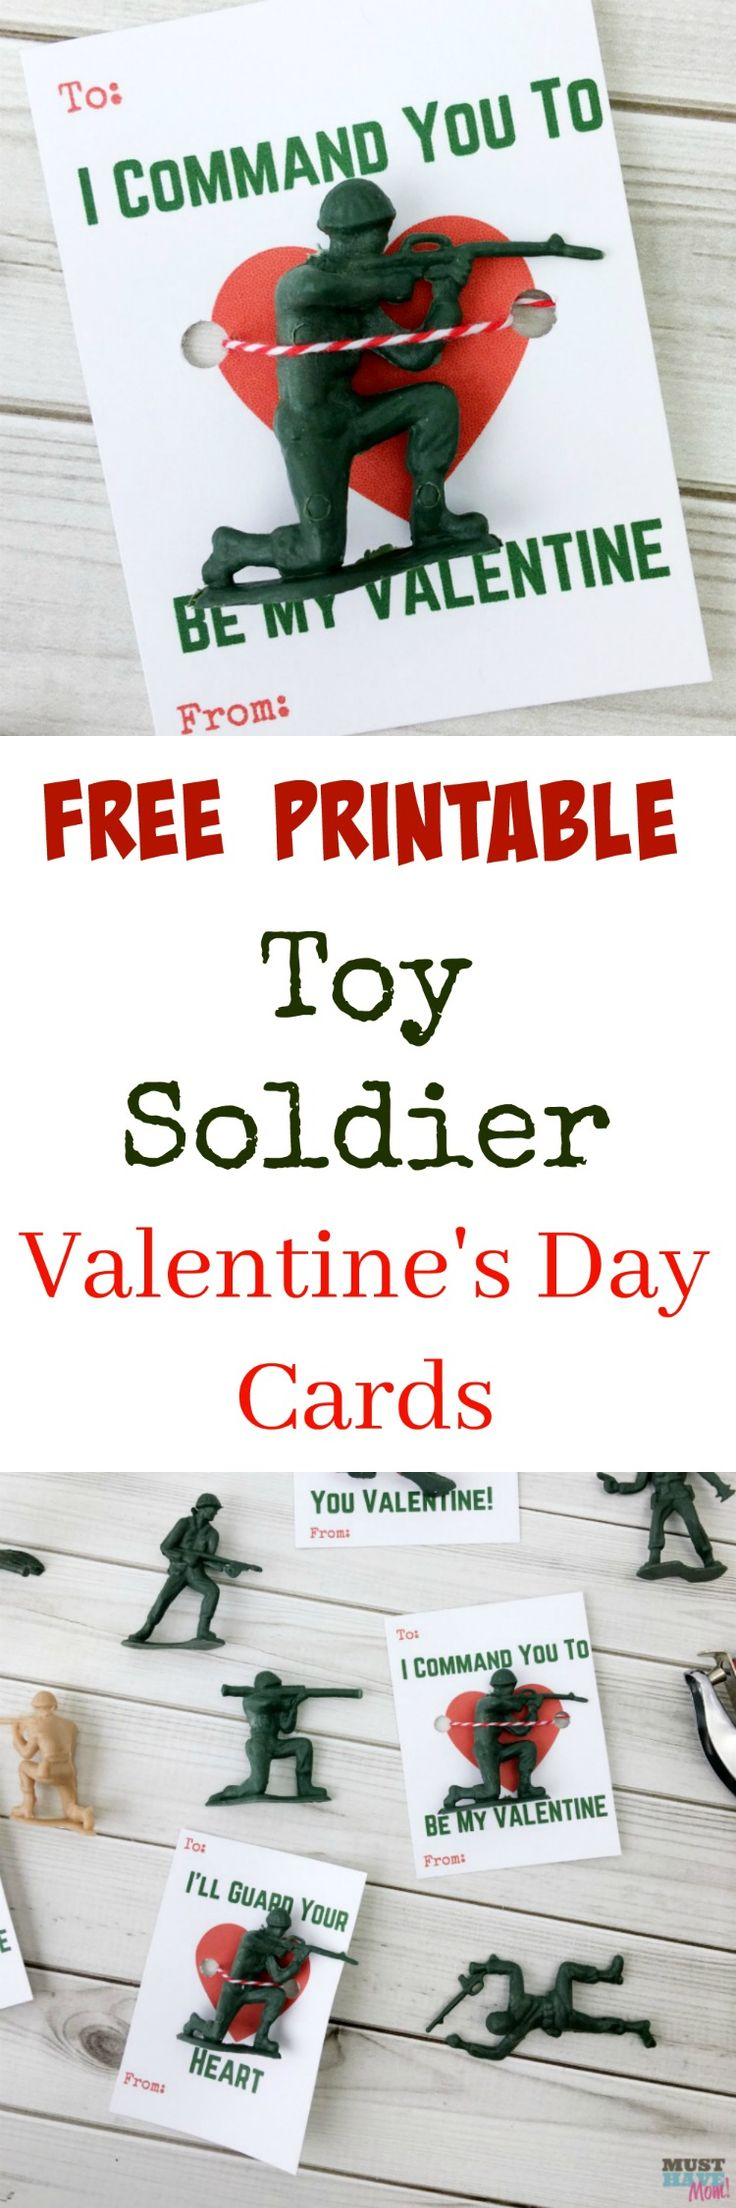 Free printable kids classroom valentine cards with army guys! Grab these army Valentine's Day cards for free now!